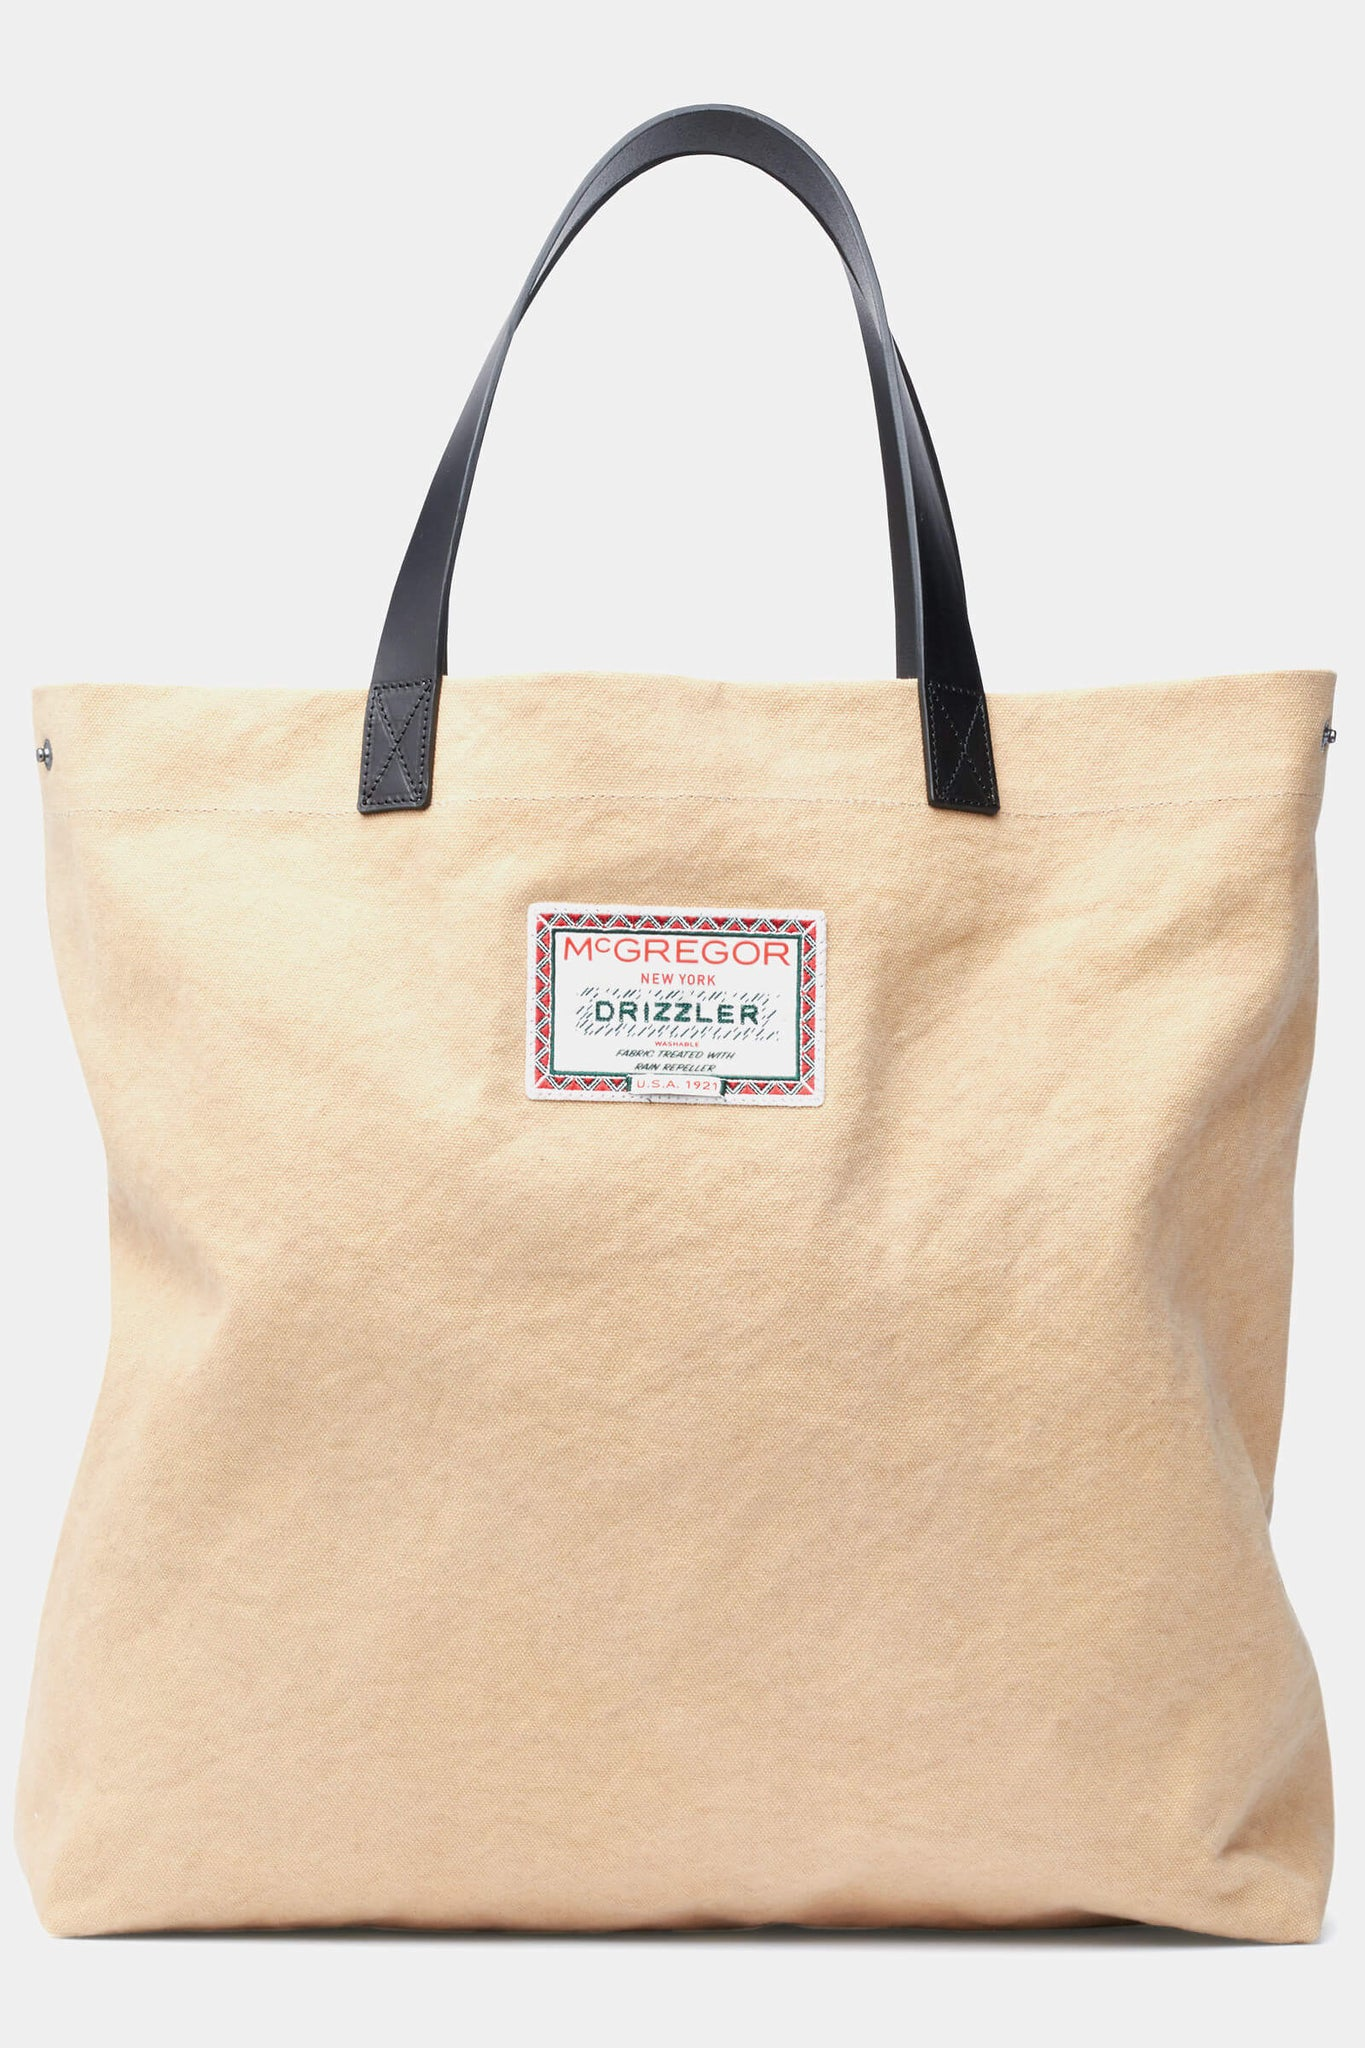 Tote bag from sturdy canvas and leather handles